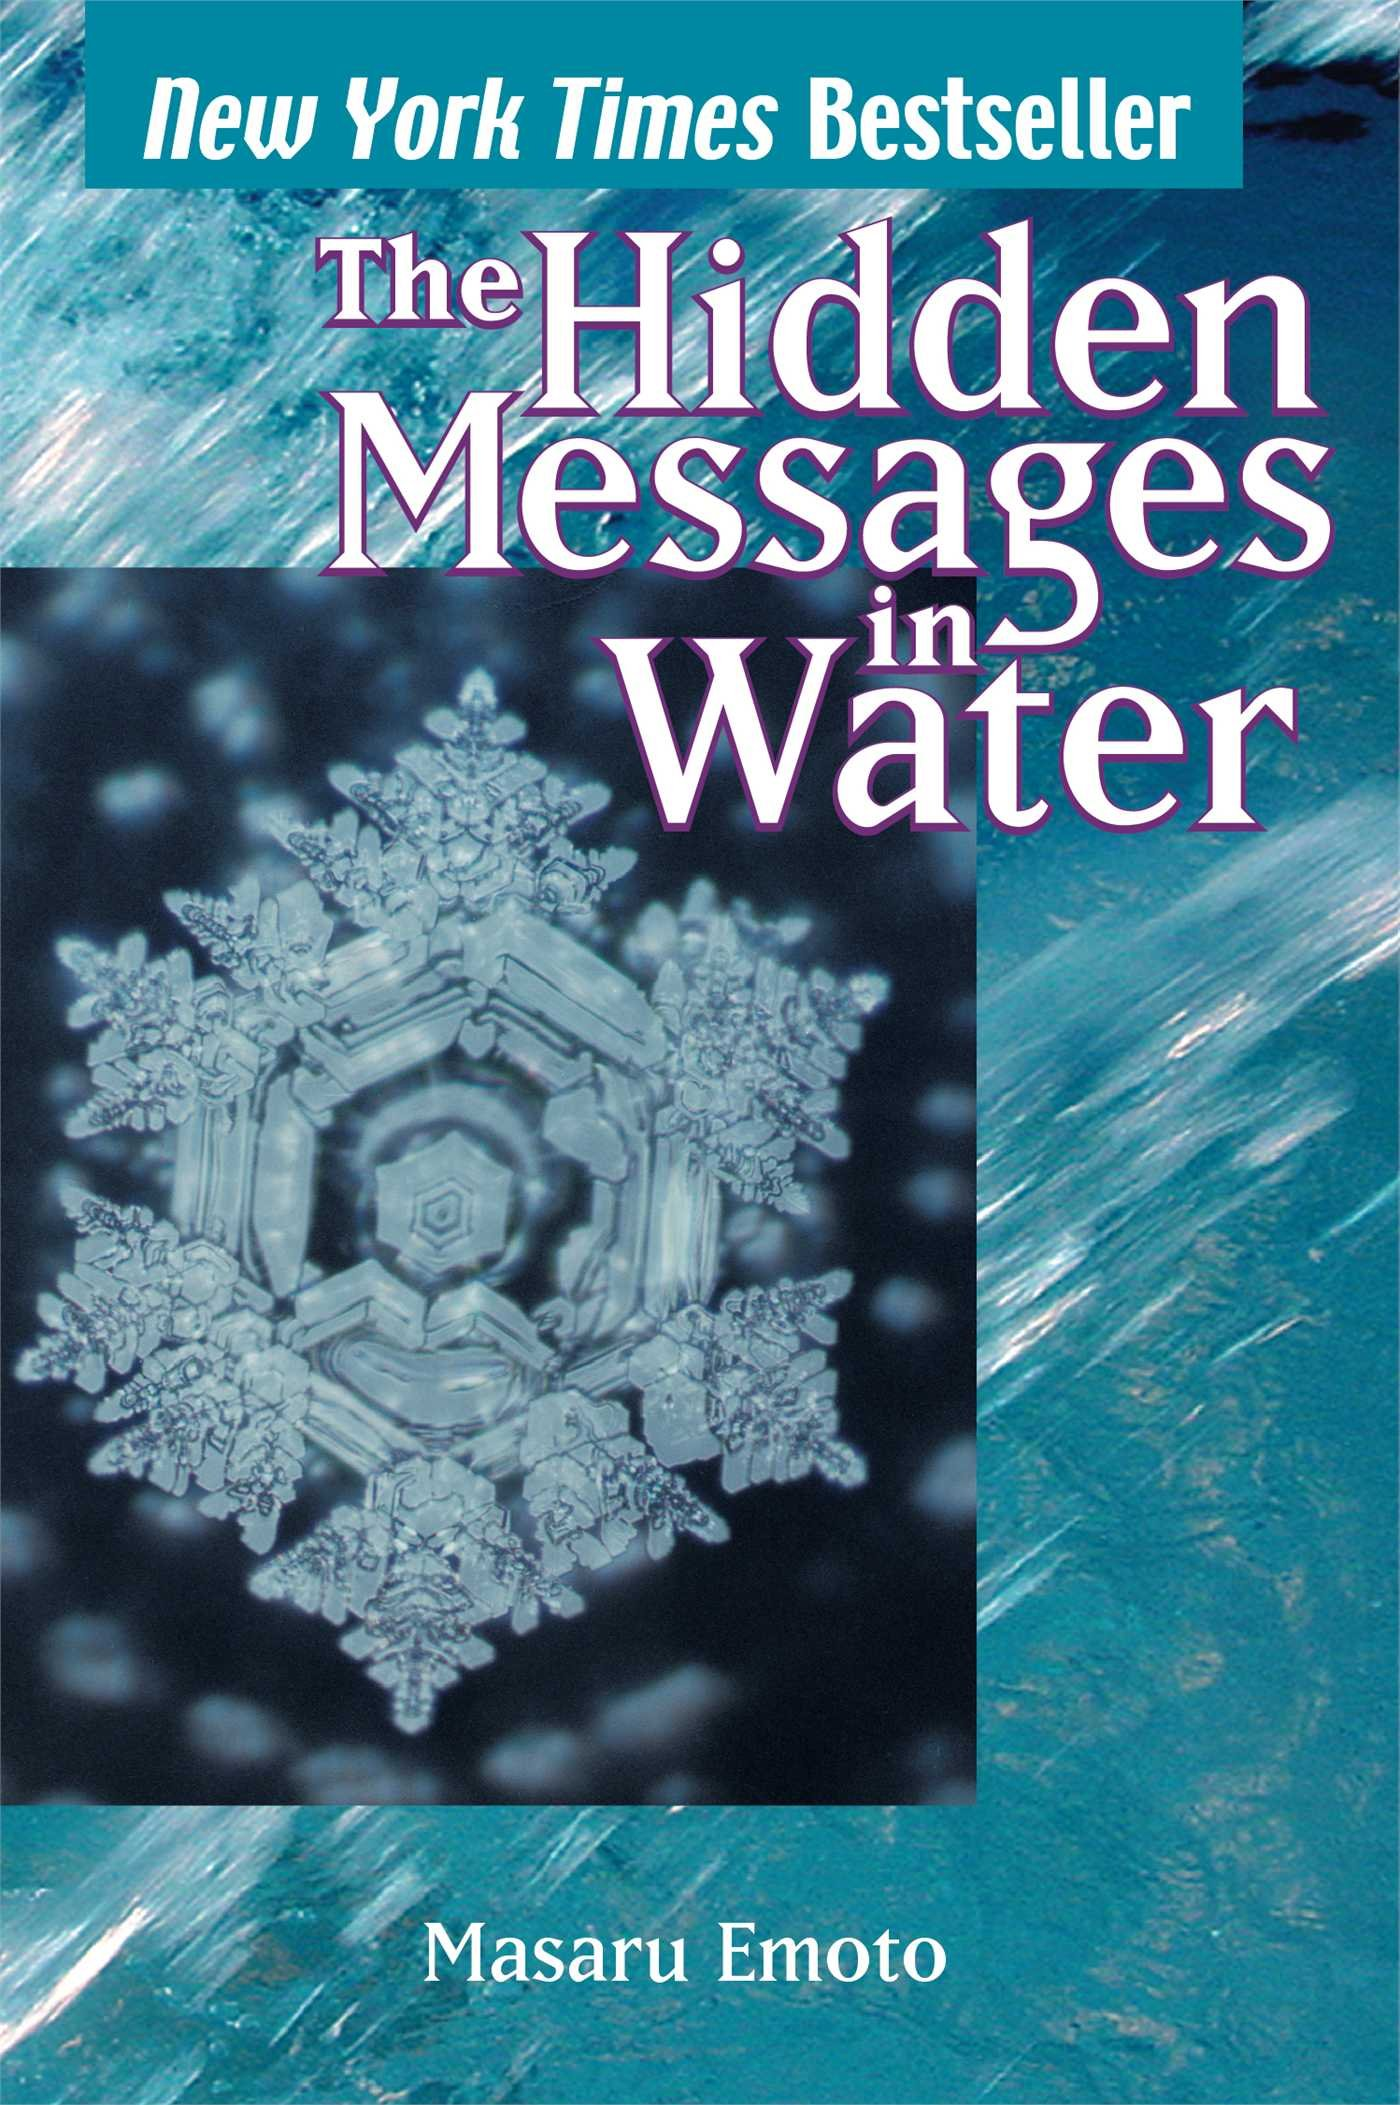 the hidden messages in water - By Dr. Masaru EmotoThis book has the potential to profoundly transform your world view. Using high-speed photography, Dr. Masaru Emoto discovered that crystals formed in frozen water reveal changes when specific, concentrated thoughts are directed toward them. He found that water from clear springs and water that has been exposed to loving words shows brilliant, complex, and colorful snowflake patterns.In contrast, polluted water, or water exposed to negative thoughts, forms incomplete, asymmetrical patterns with dull colors. The implications of this research create a new awareness of how we can positively impact the earth and our personal health.